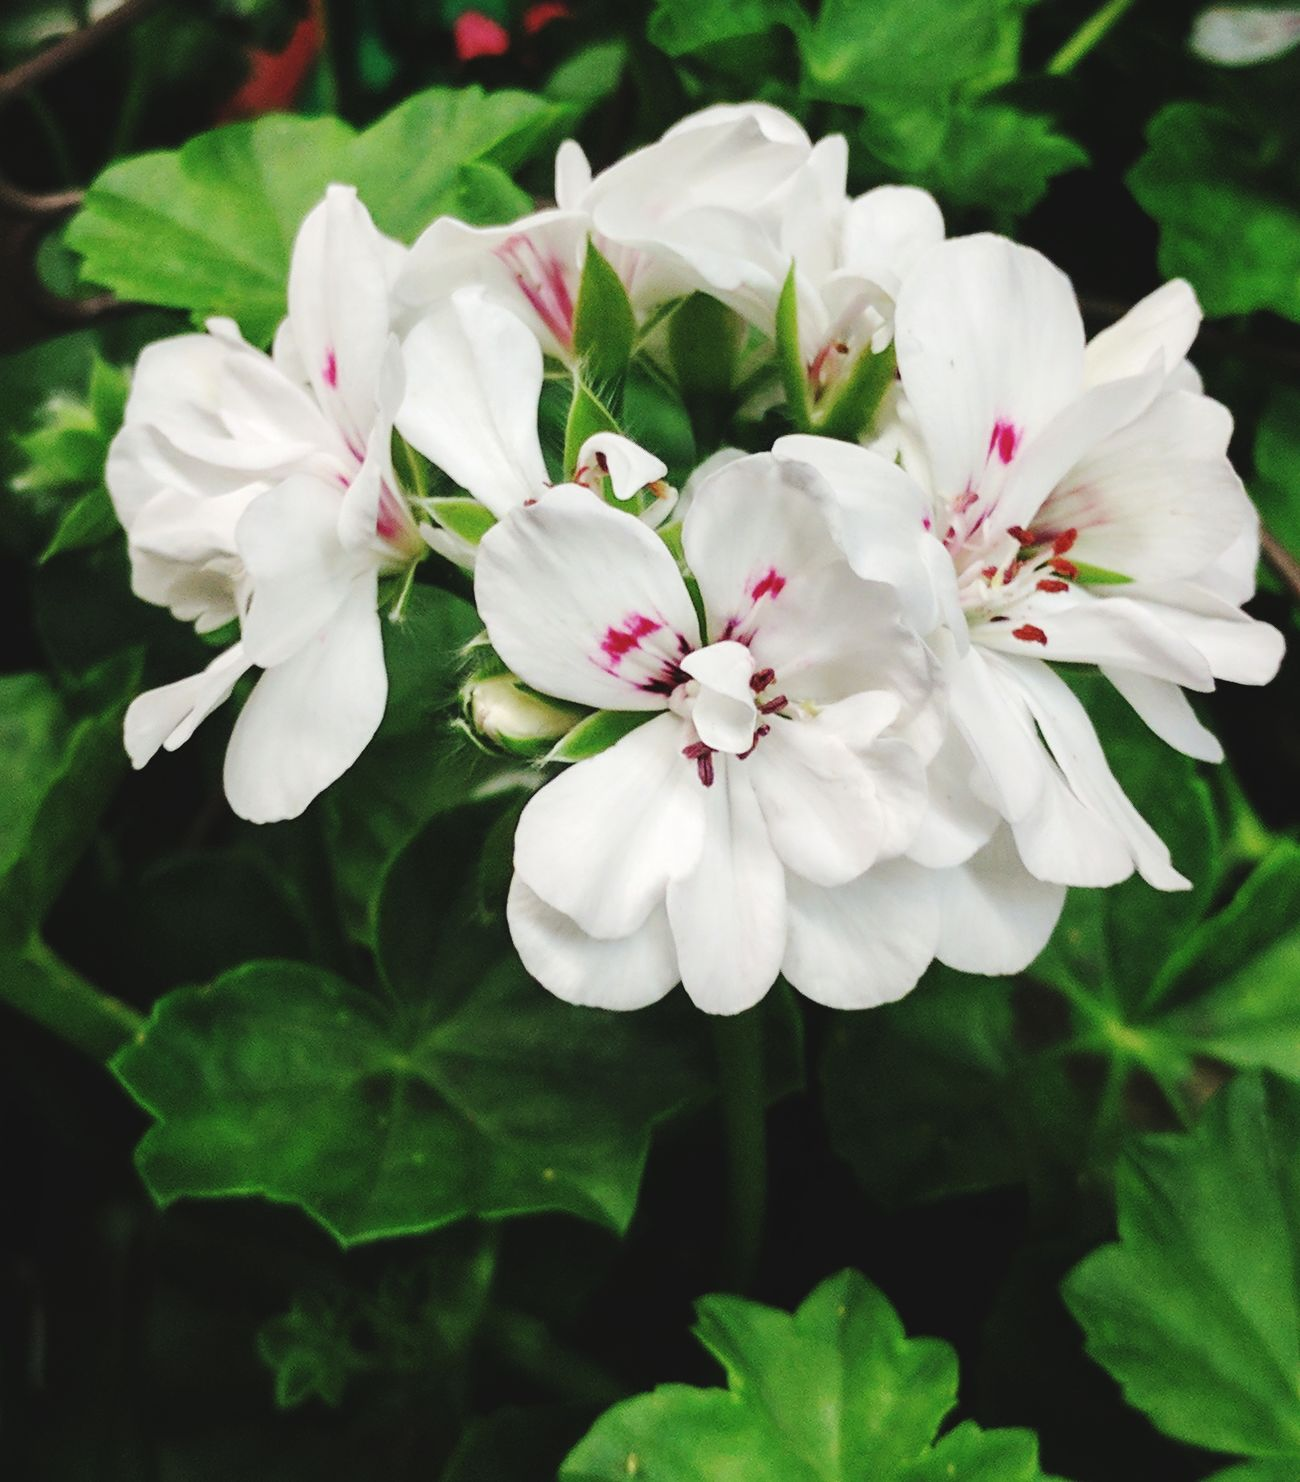 Geranium Flowers Flower Flower Head Petal Freshness Fragility Close-up Blossom No People Plant Springtime Love Of Flowers White And Pink Flowers Green Color Blooming Beauty In Nature Leaf